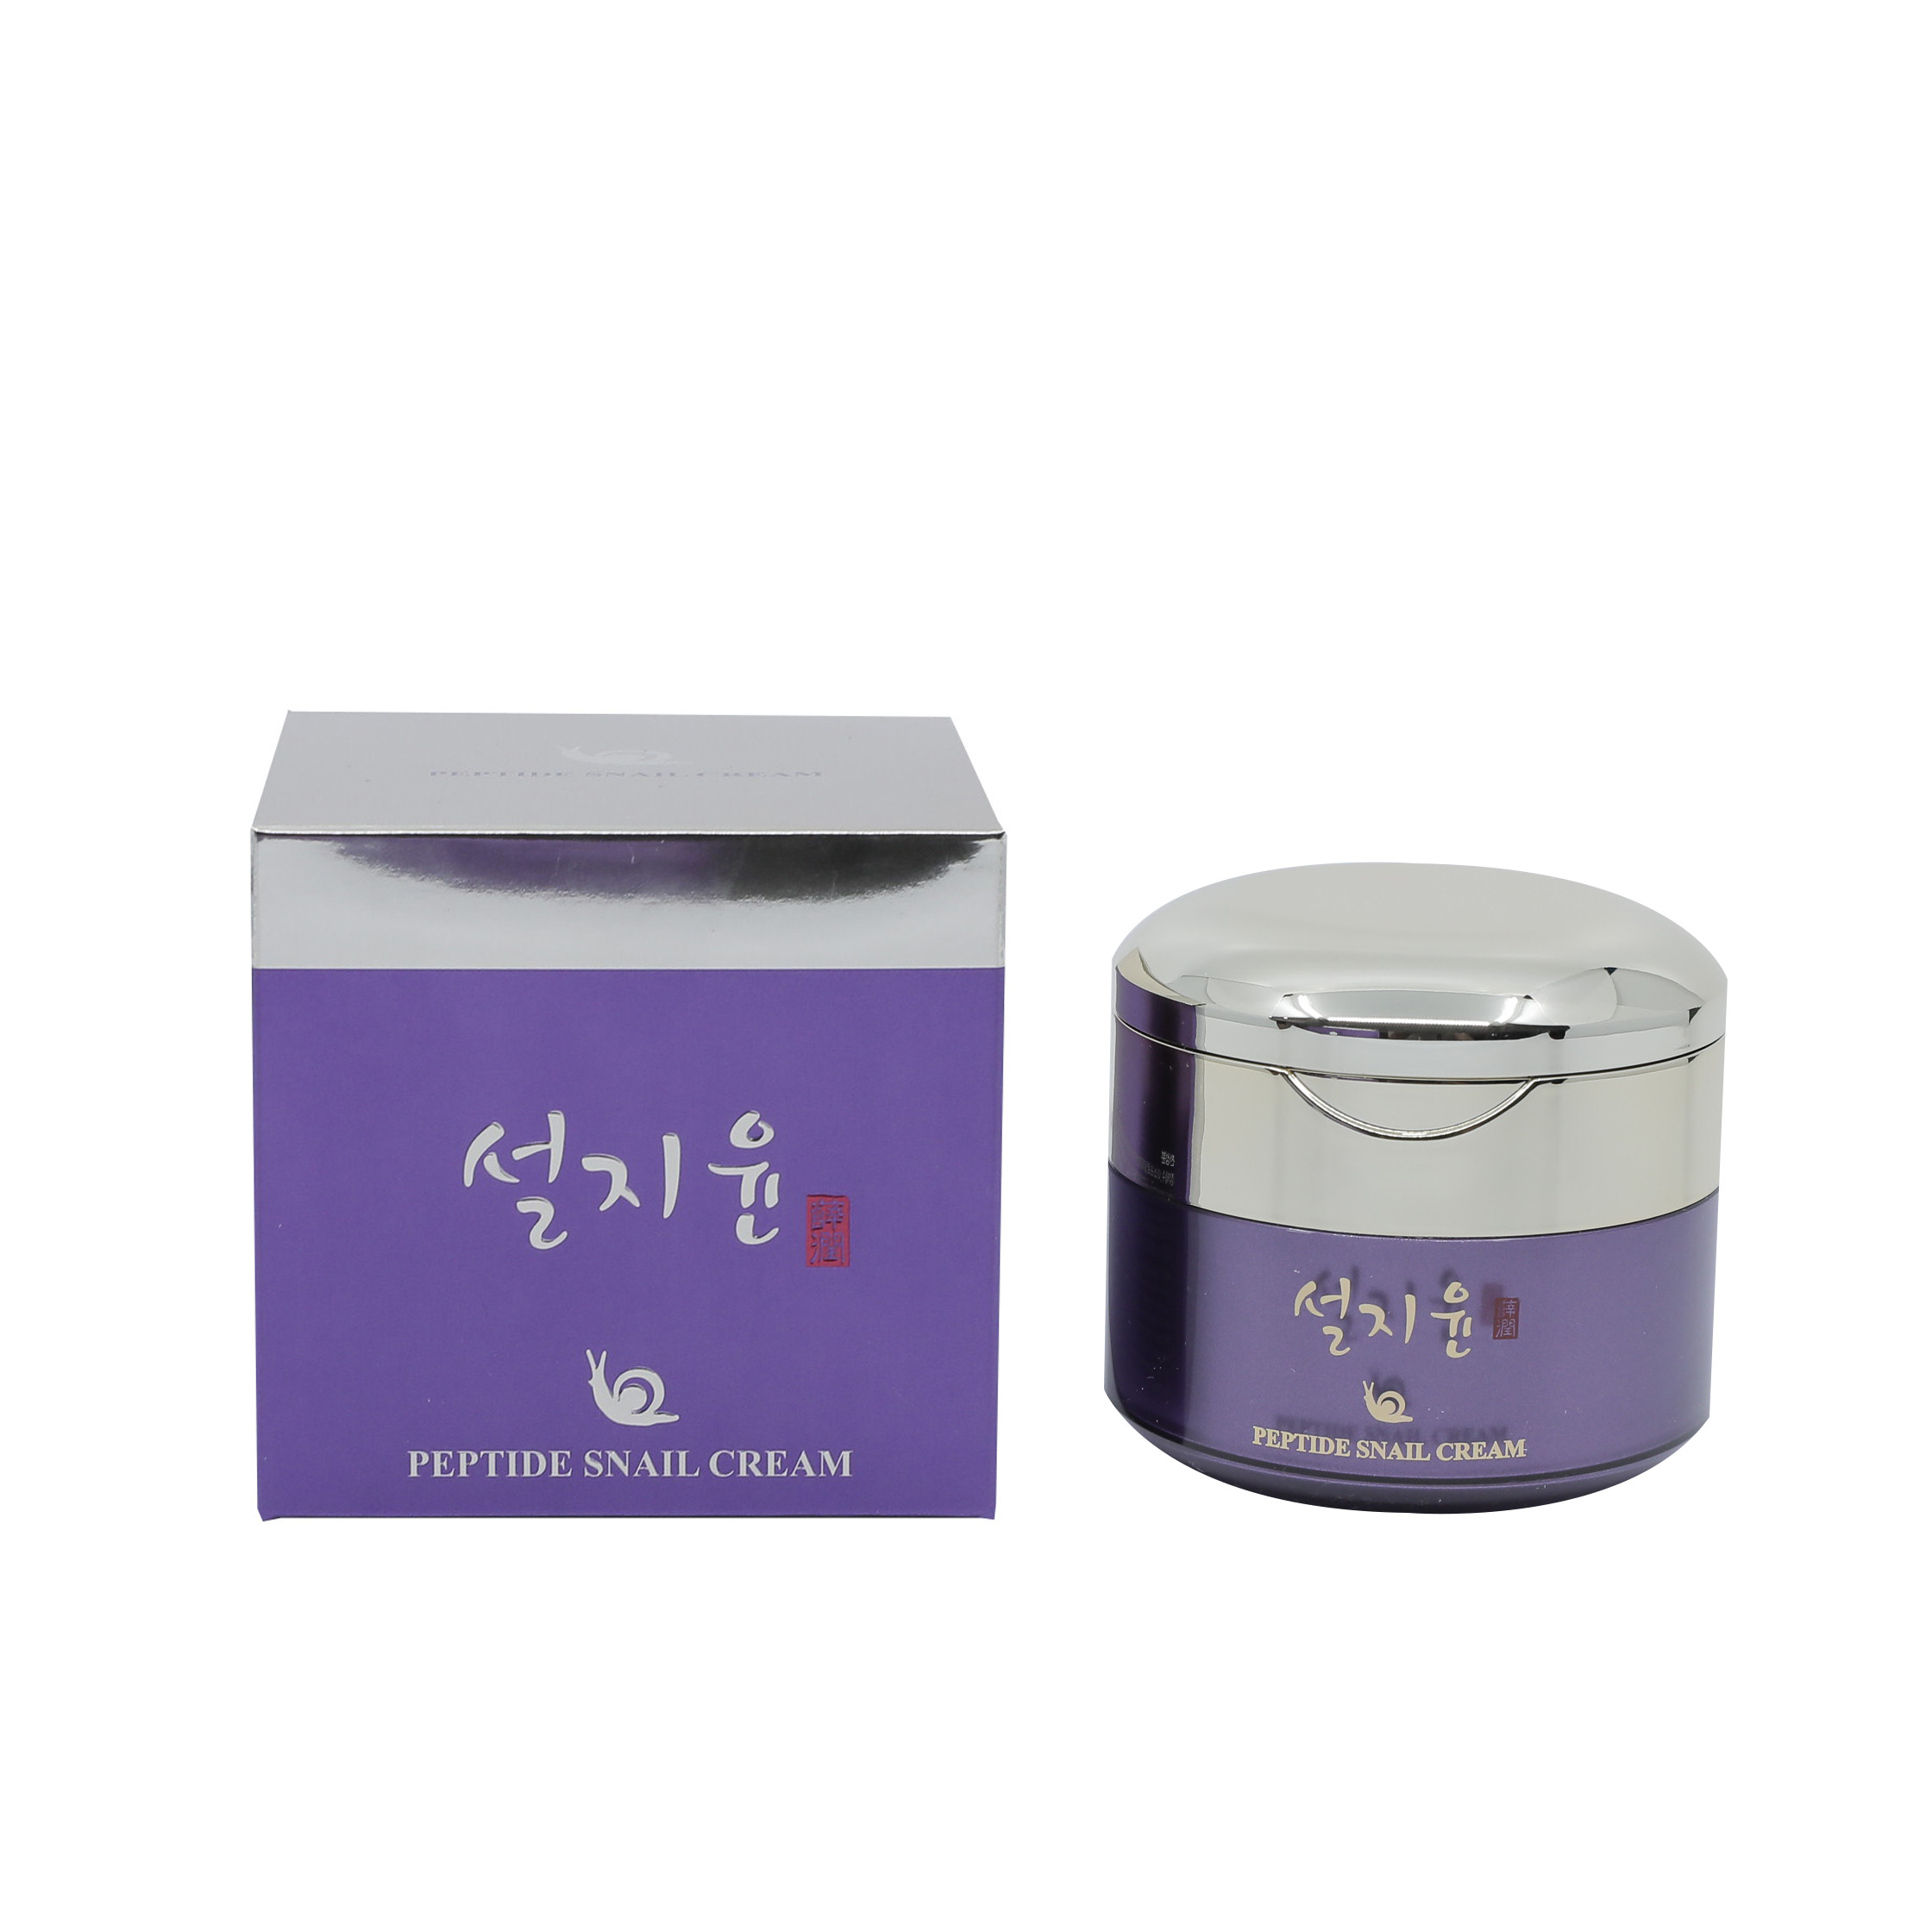 Seoljihyoon Peptide Snail Cream상품이미지